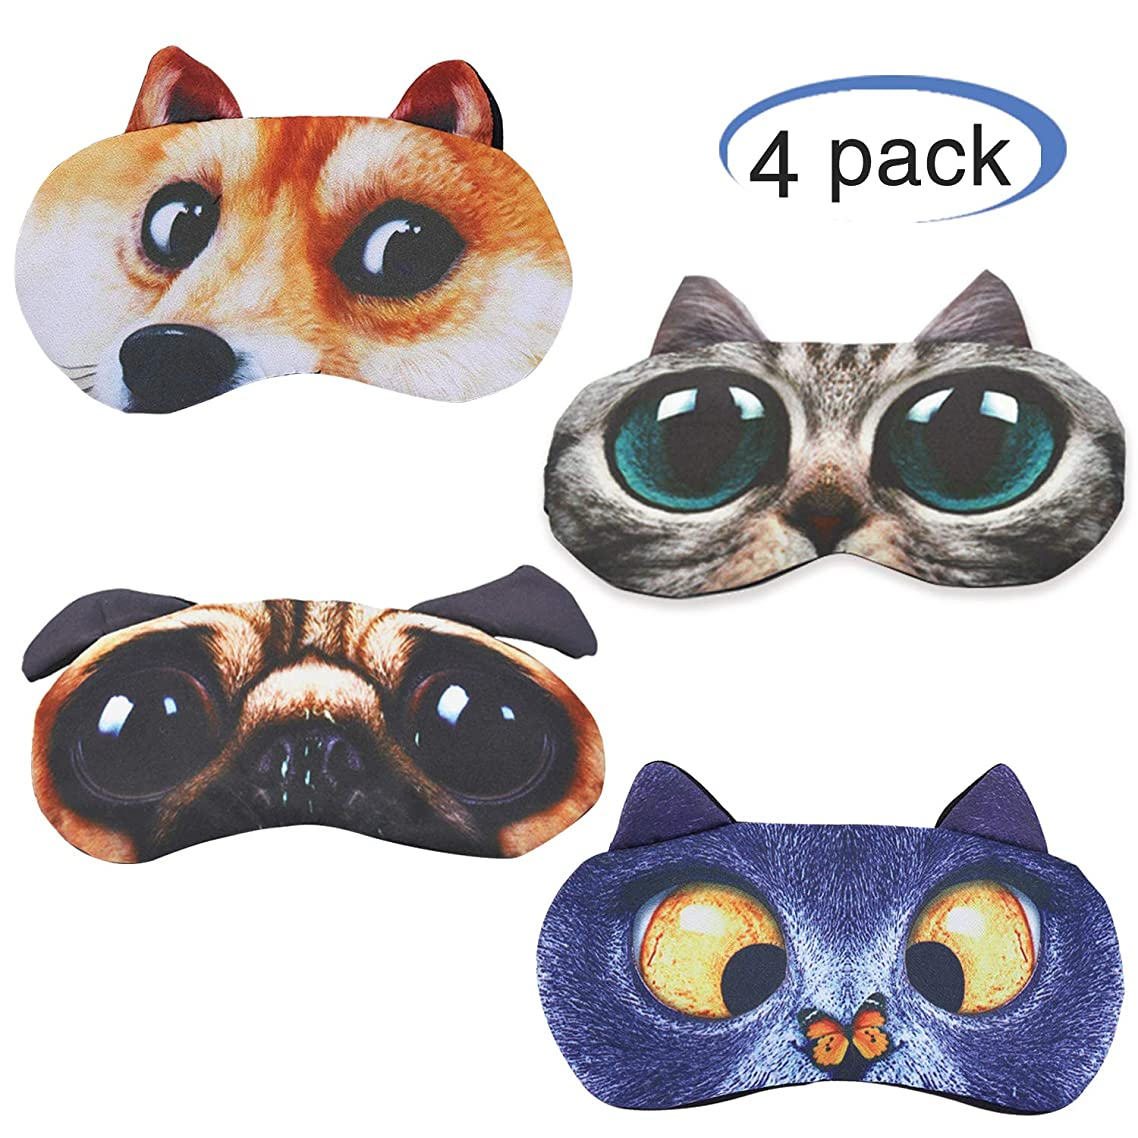 Hycles Funny Sleep Mask for Kids Women Men Soft Eye Cover Blindfold Mask Cute Animal Cartoon Cat Dog Sleep Eye Mask for Sleeping 4 Pack